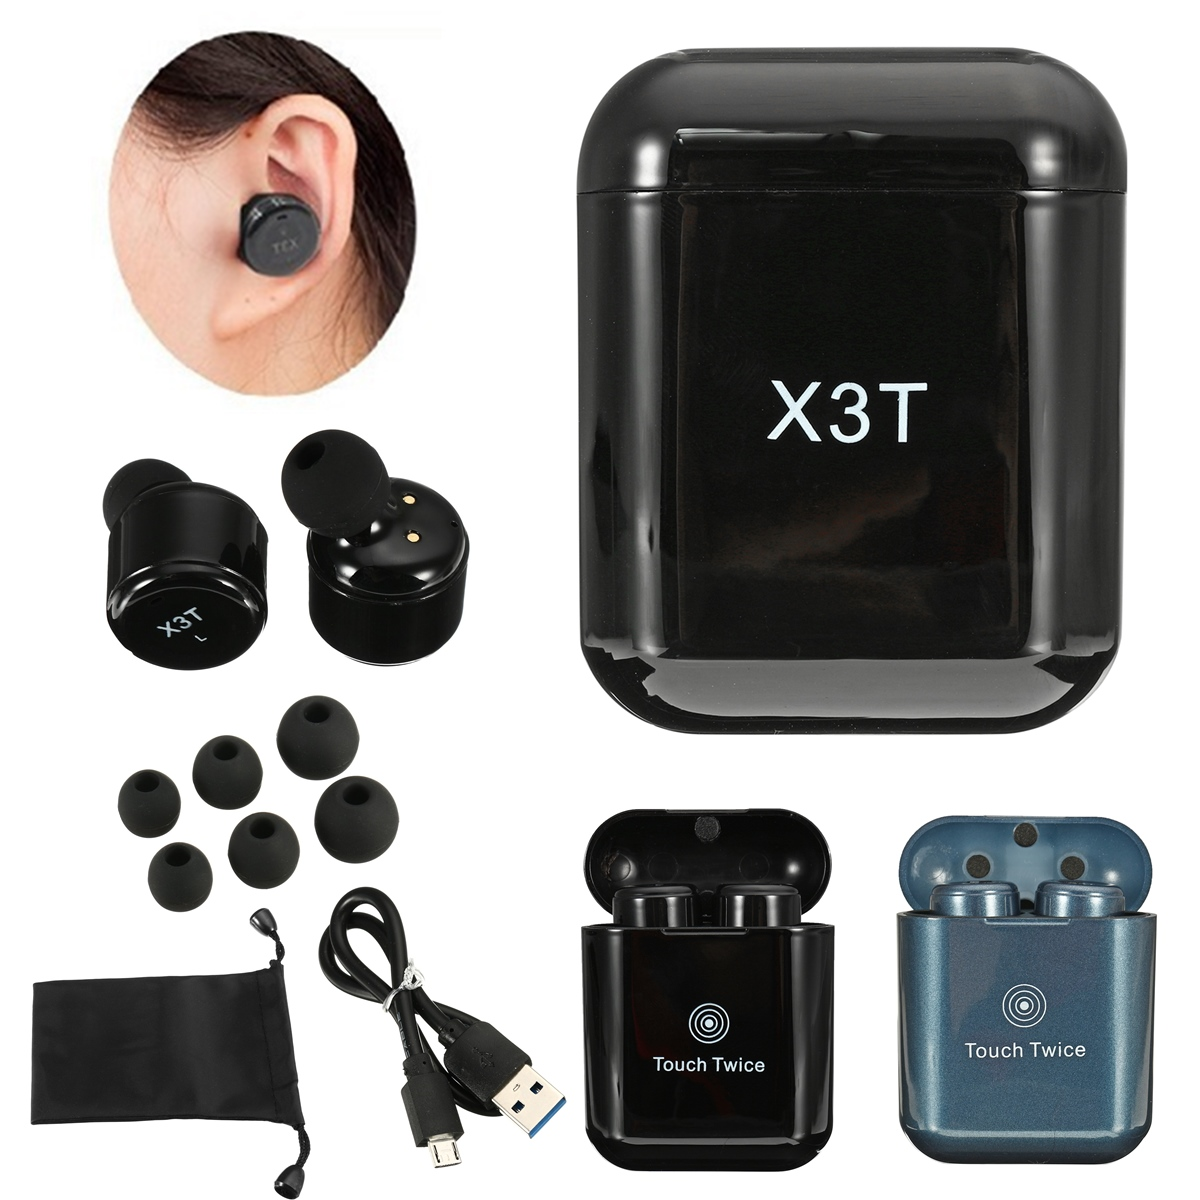 [True Wireless] X3T TWS Double bluetooth Earphones Stereo Touch Control Earbuds with Charging Box